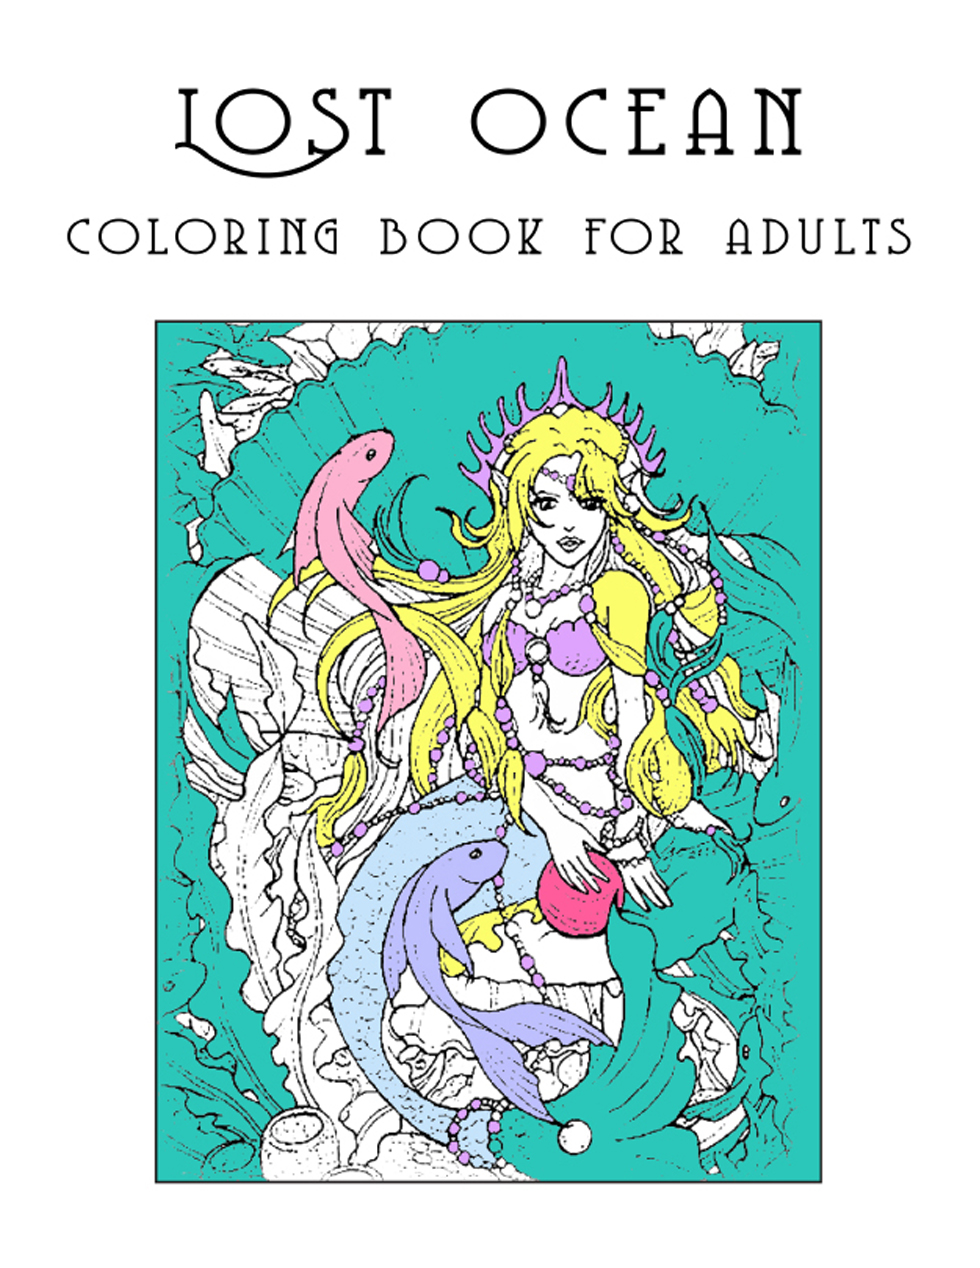 Happies - Lost Ocean Coloring Book for Adults